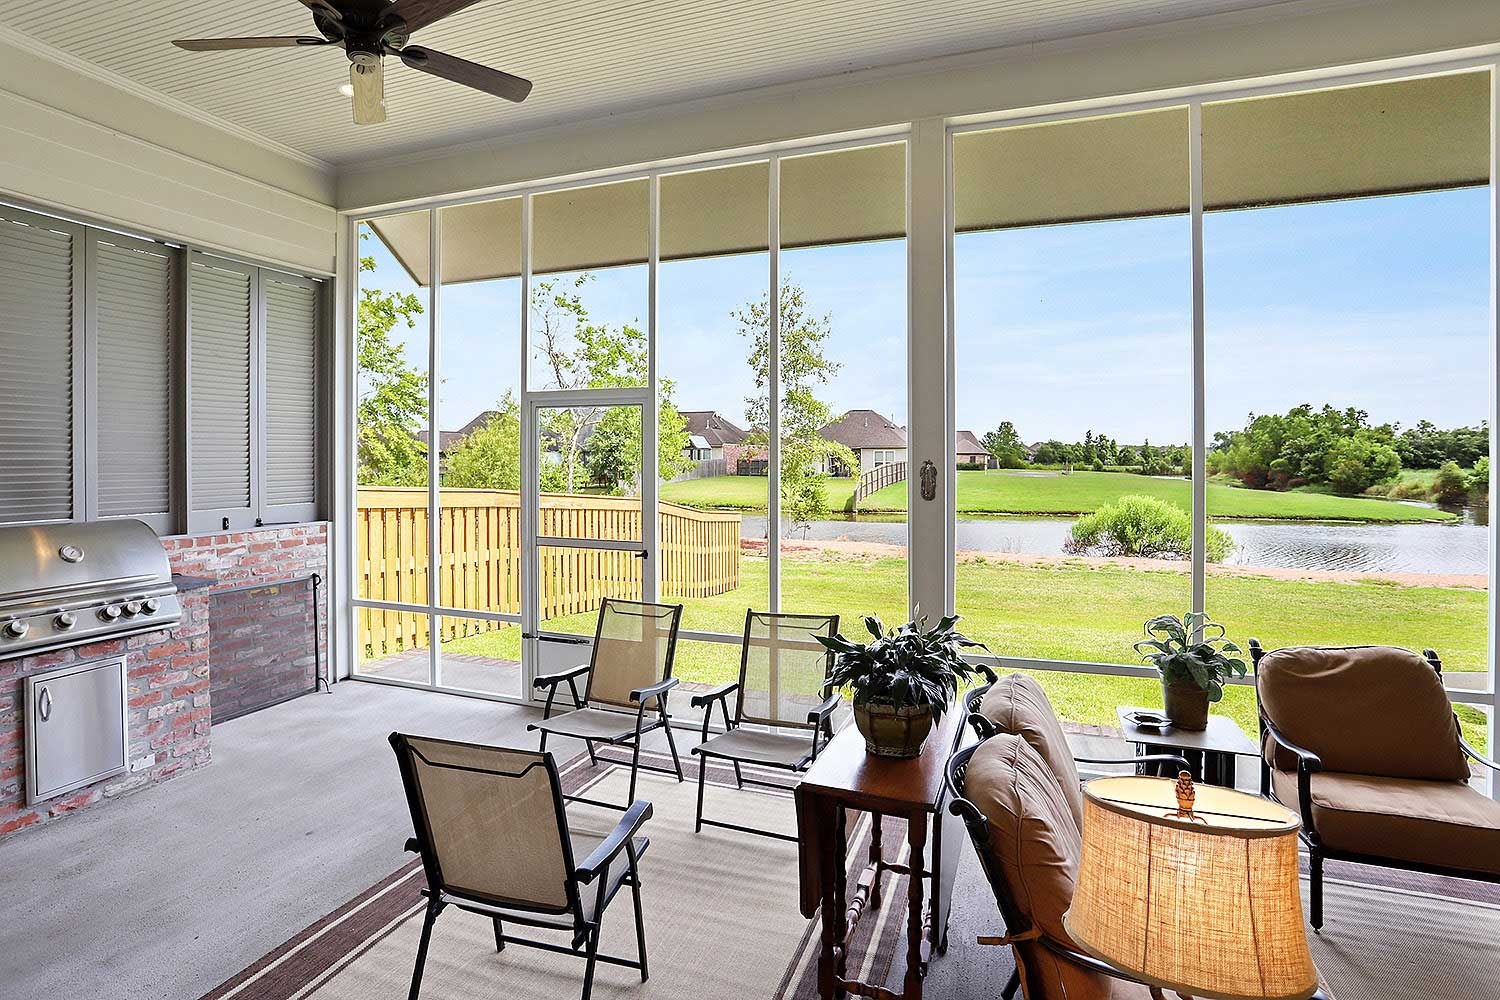 Lot 248 Harveston - Screened Patio Room View to Lake